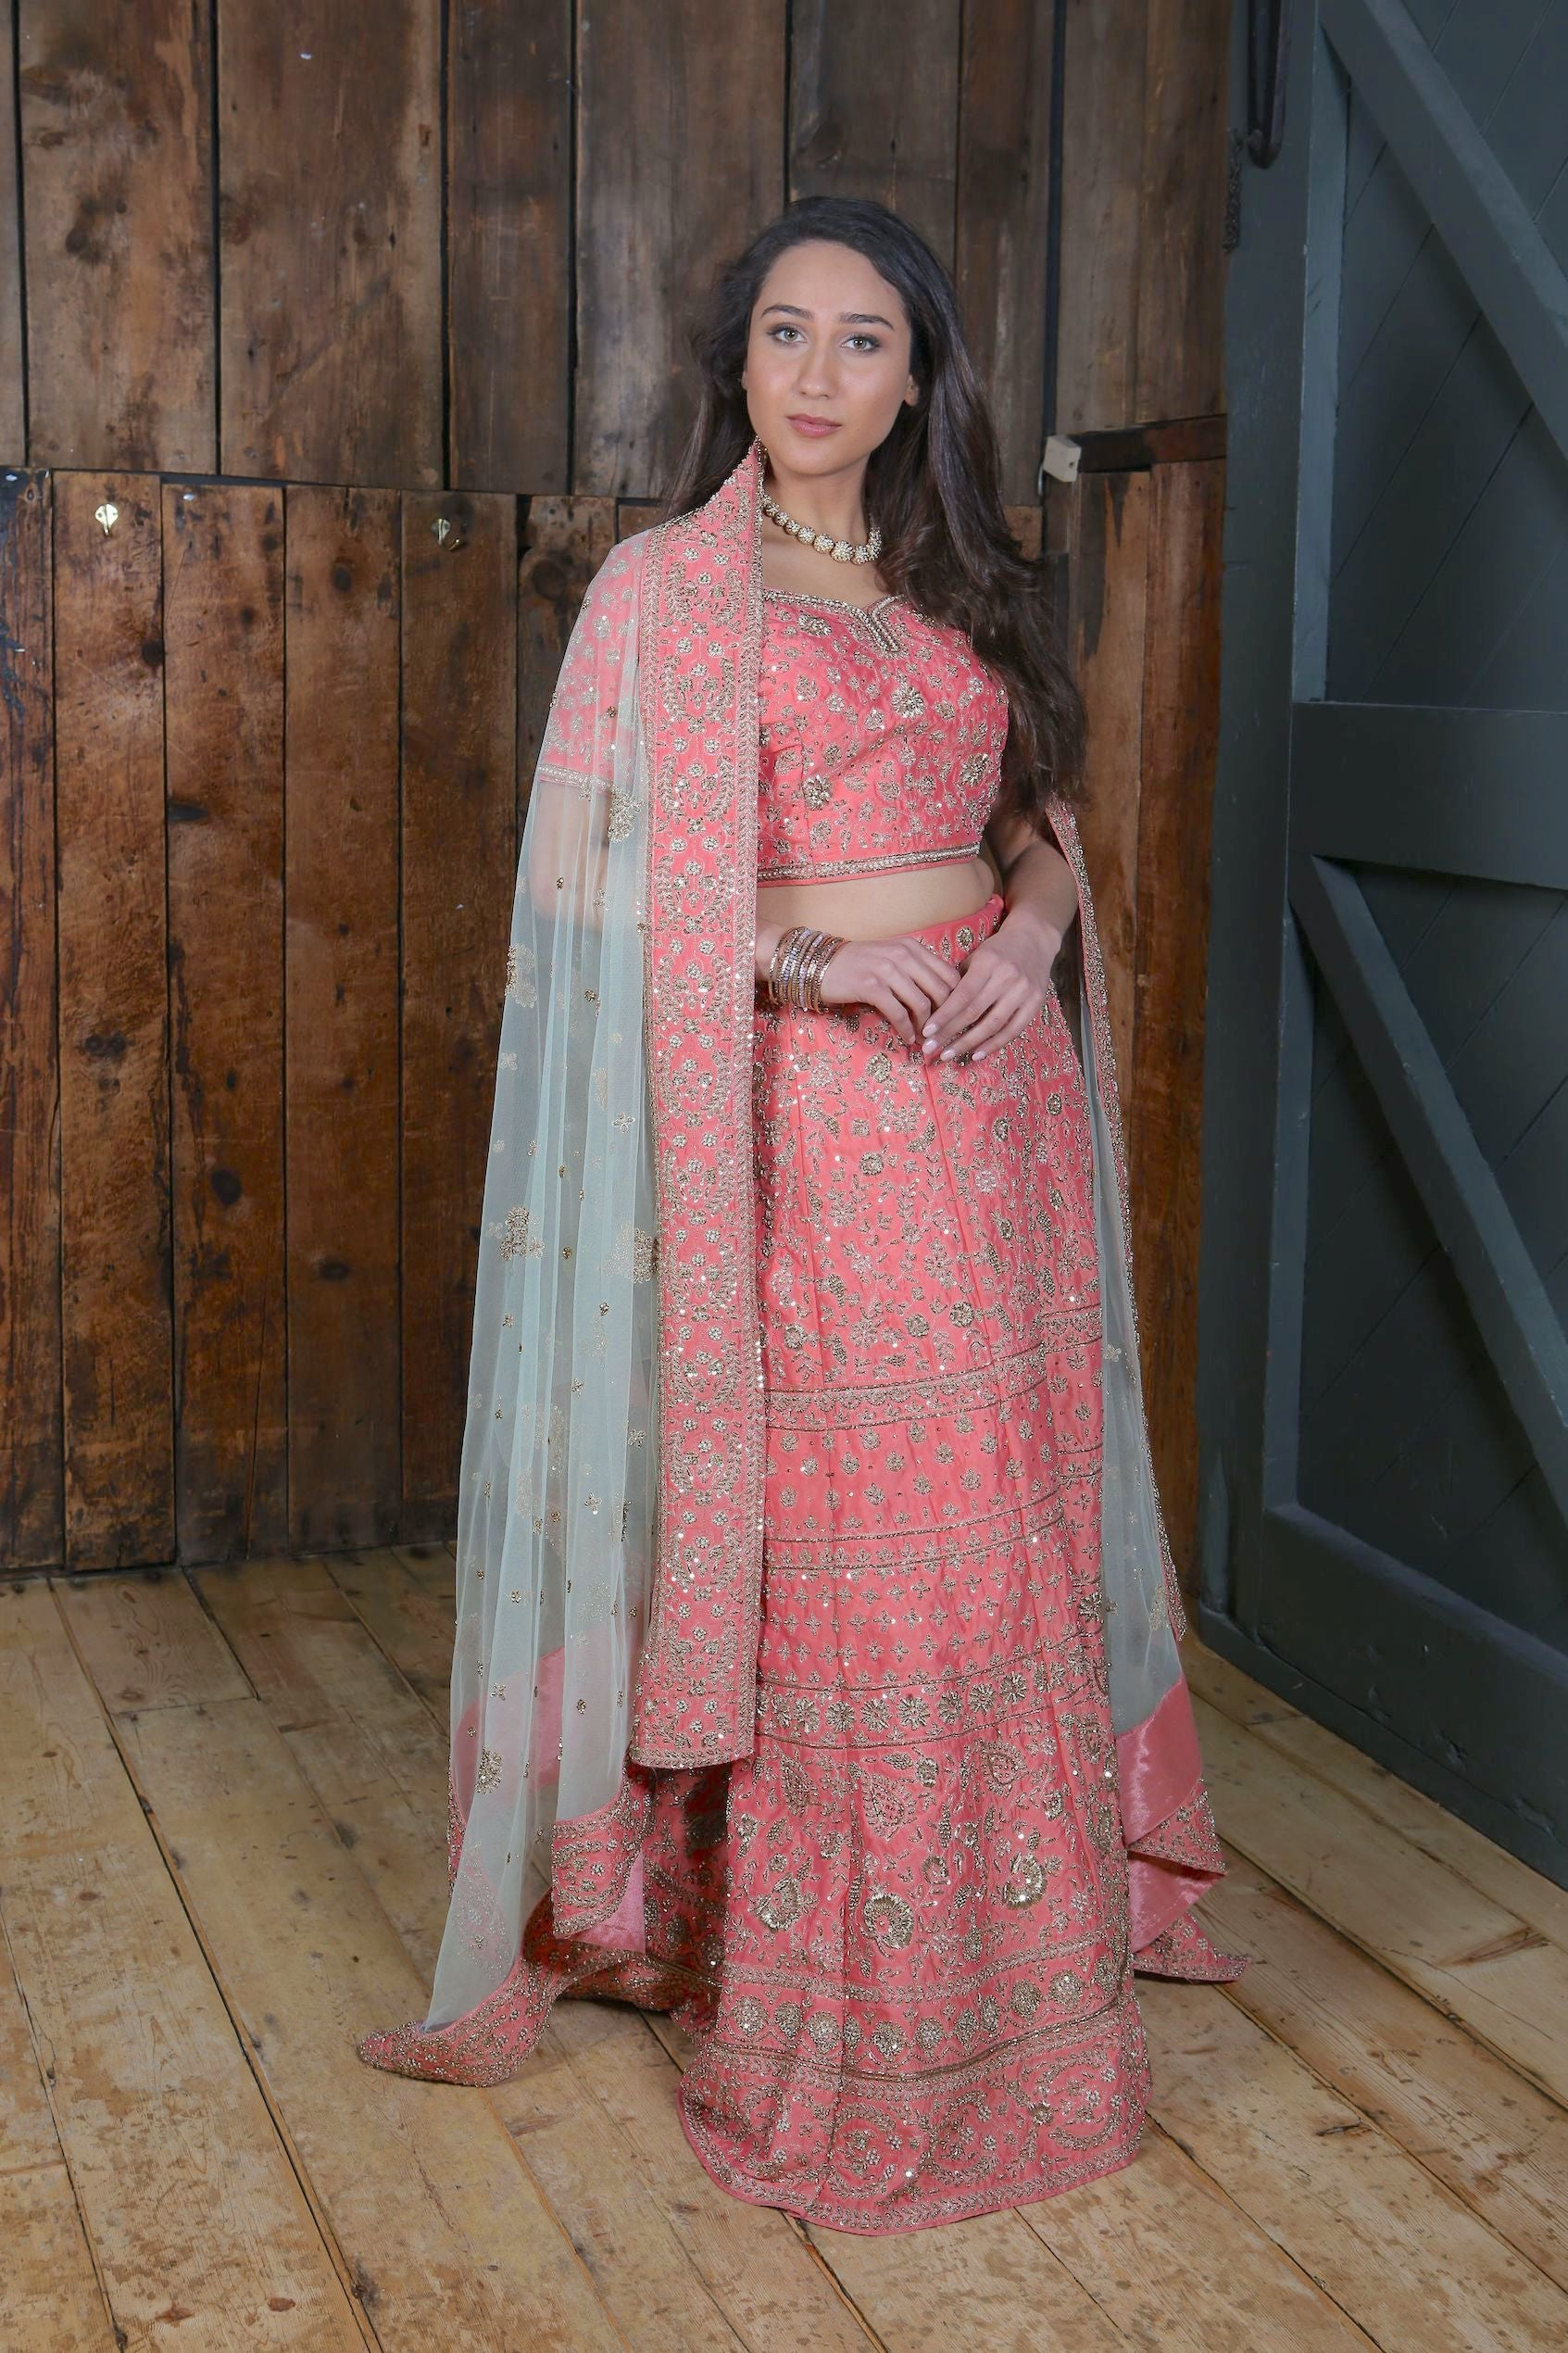 Bridal Peach silk /Light green/Zardozi